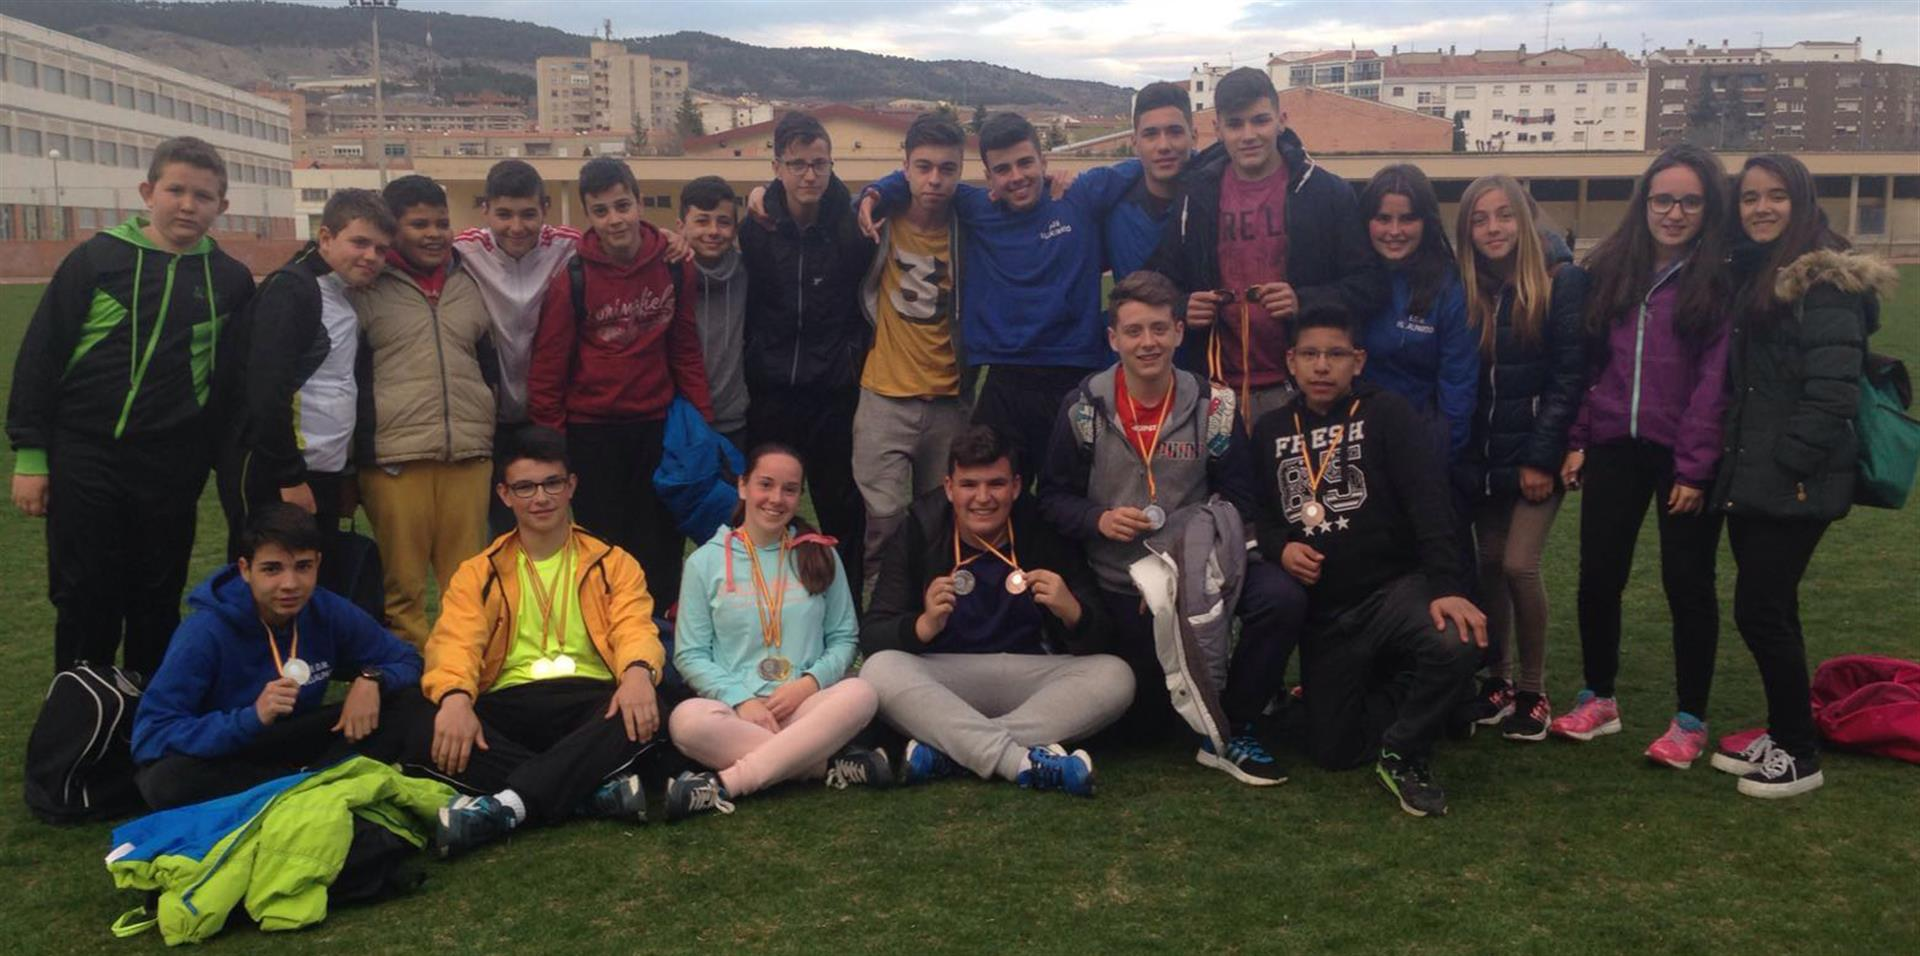 Atletismo 2016 Large